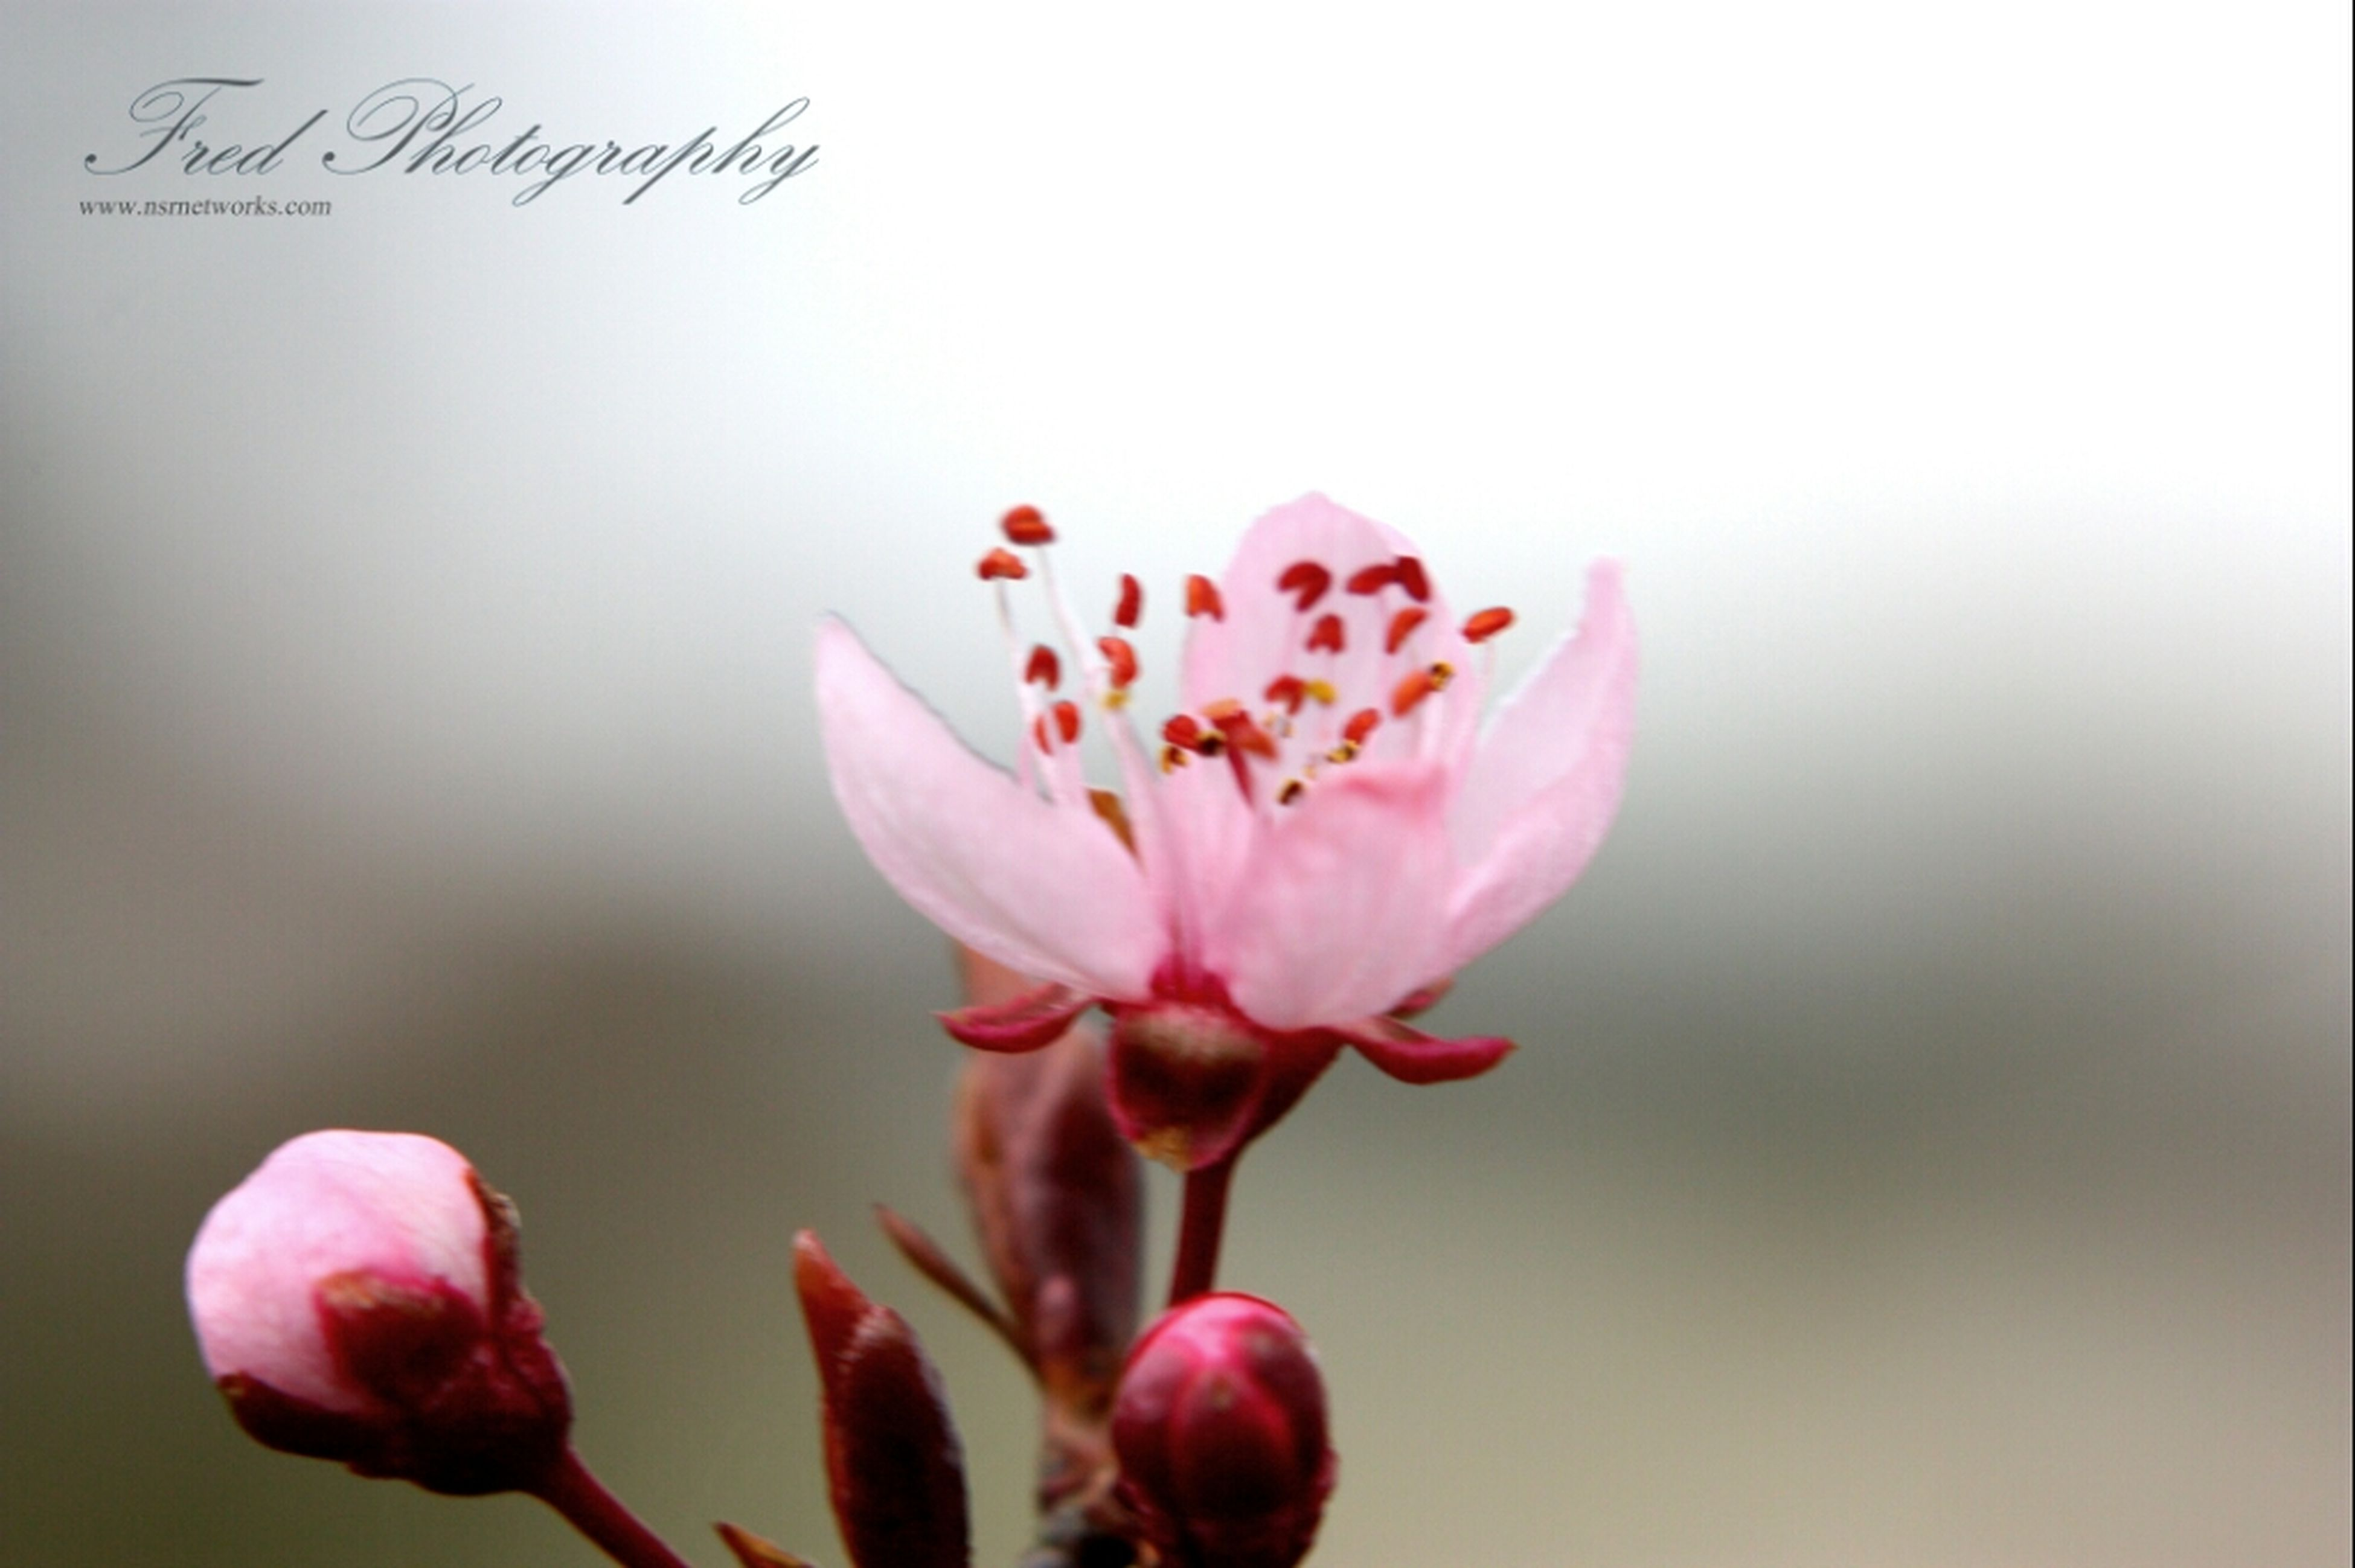 flower, freshness, petal, fragility, flower head, beauty in nature, growth, close-up, pink color, nature, focus on foreground, stem, bud, blooming, blossom, plant, in bloom, stamen, selective focus, springtime